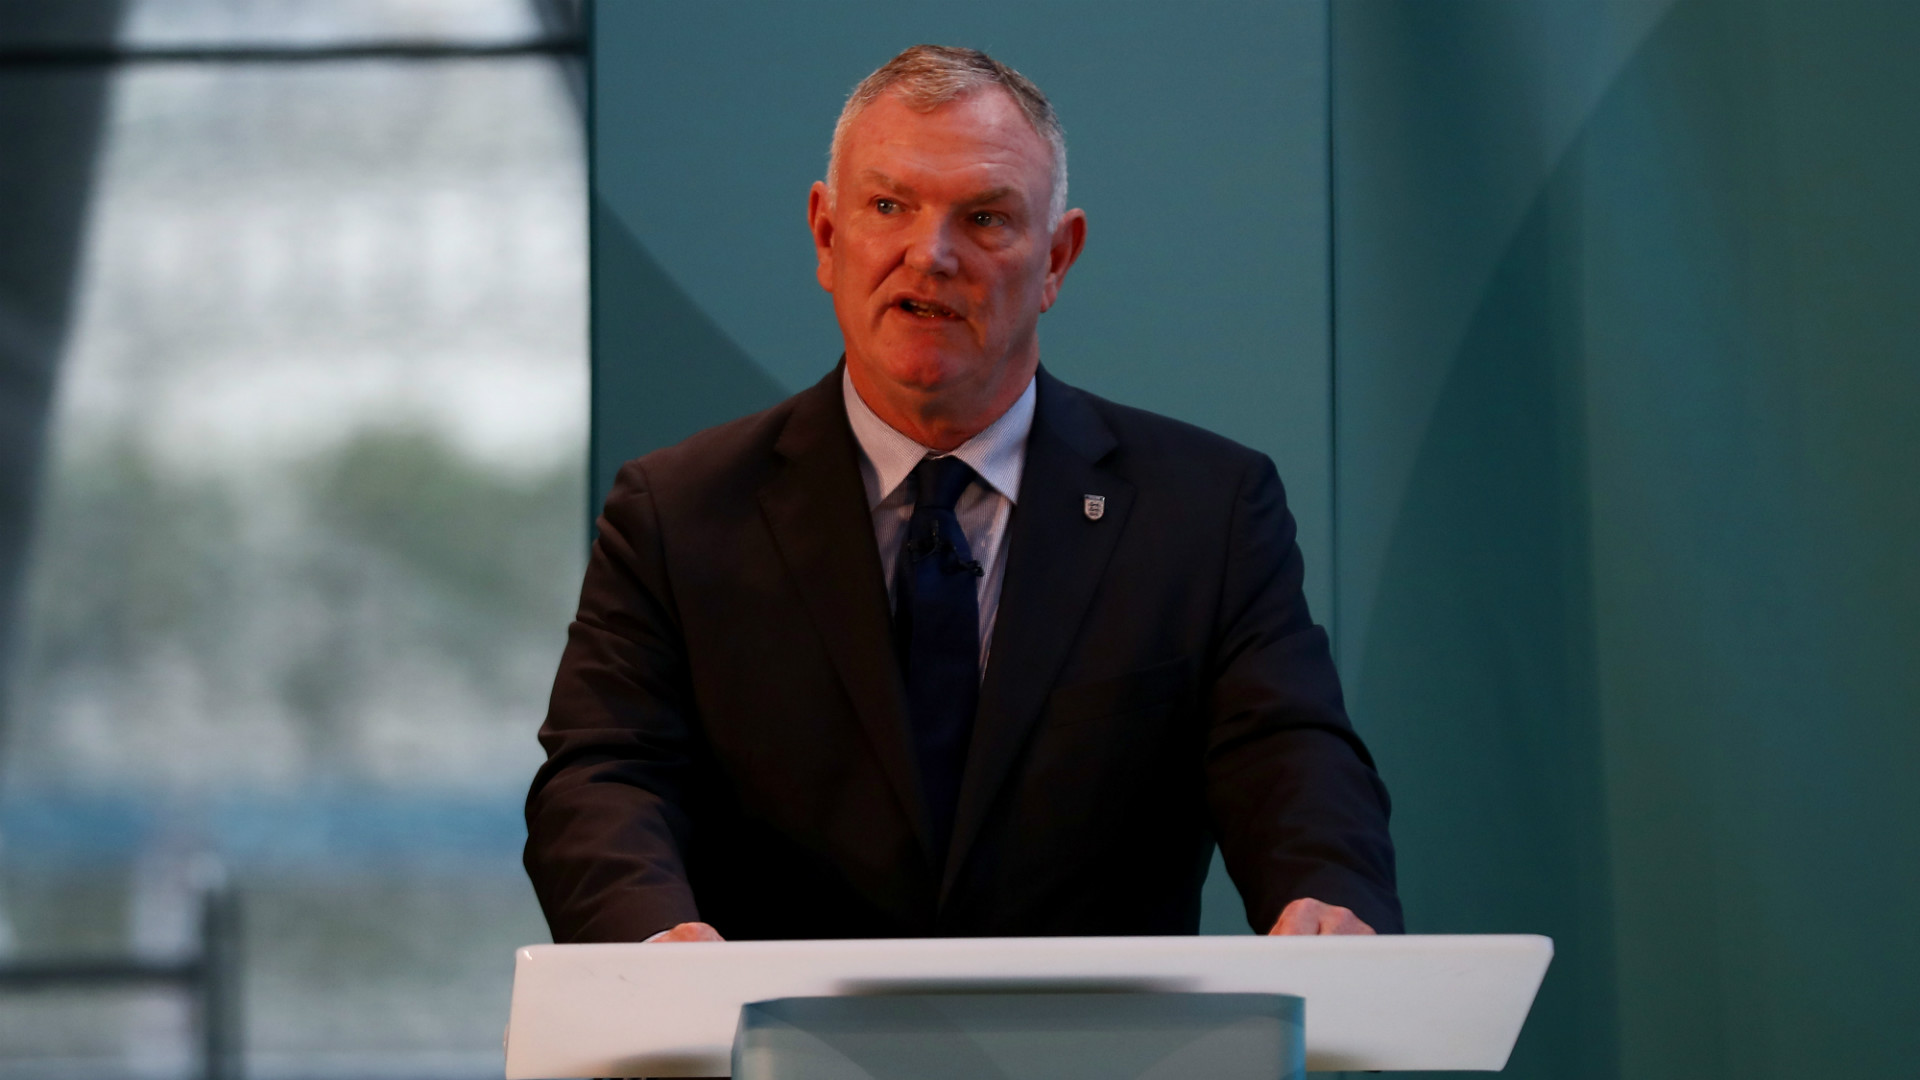 'There is more to our game than economics' - FA boss Clarke responds to Project Big Picture